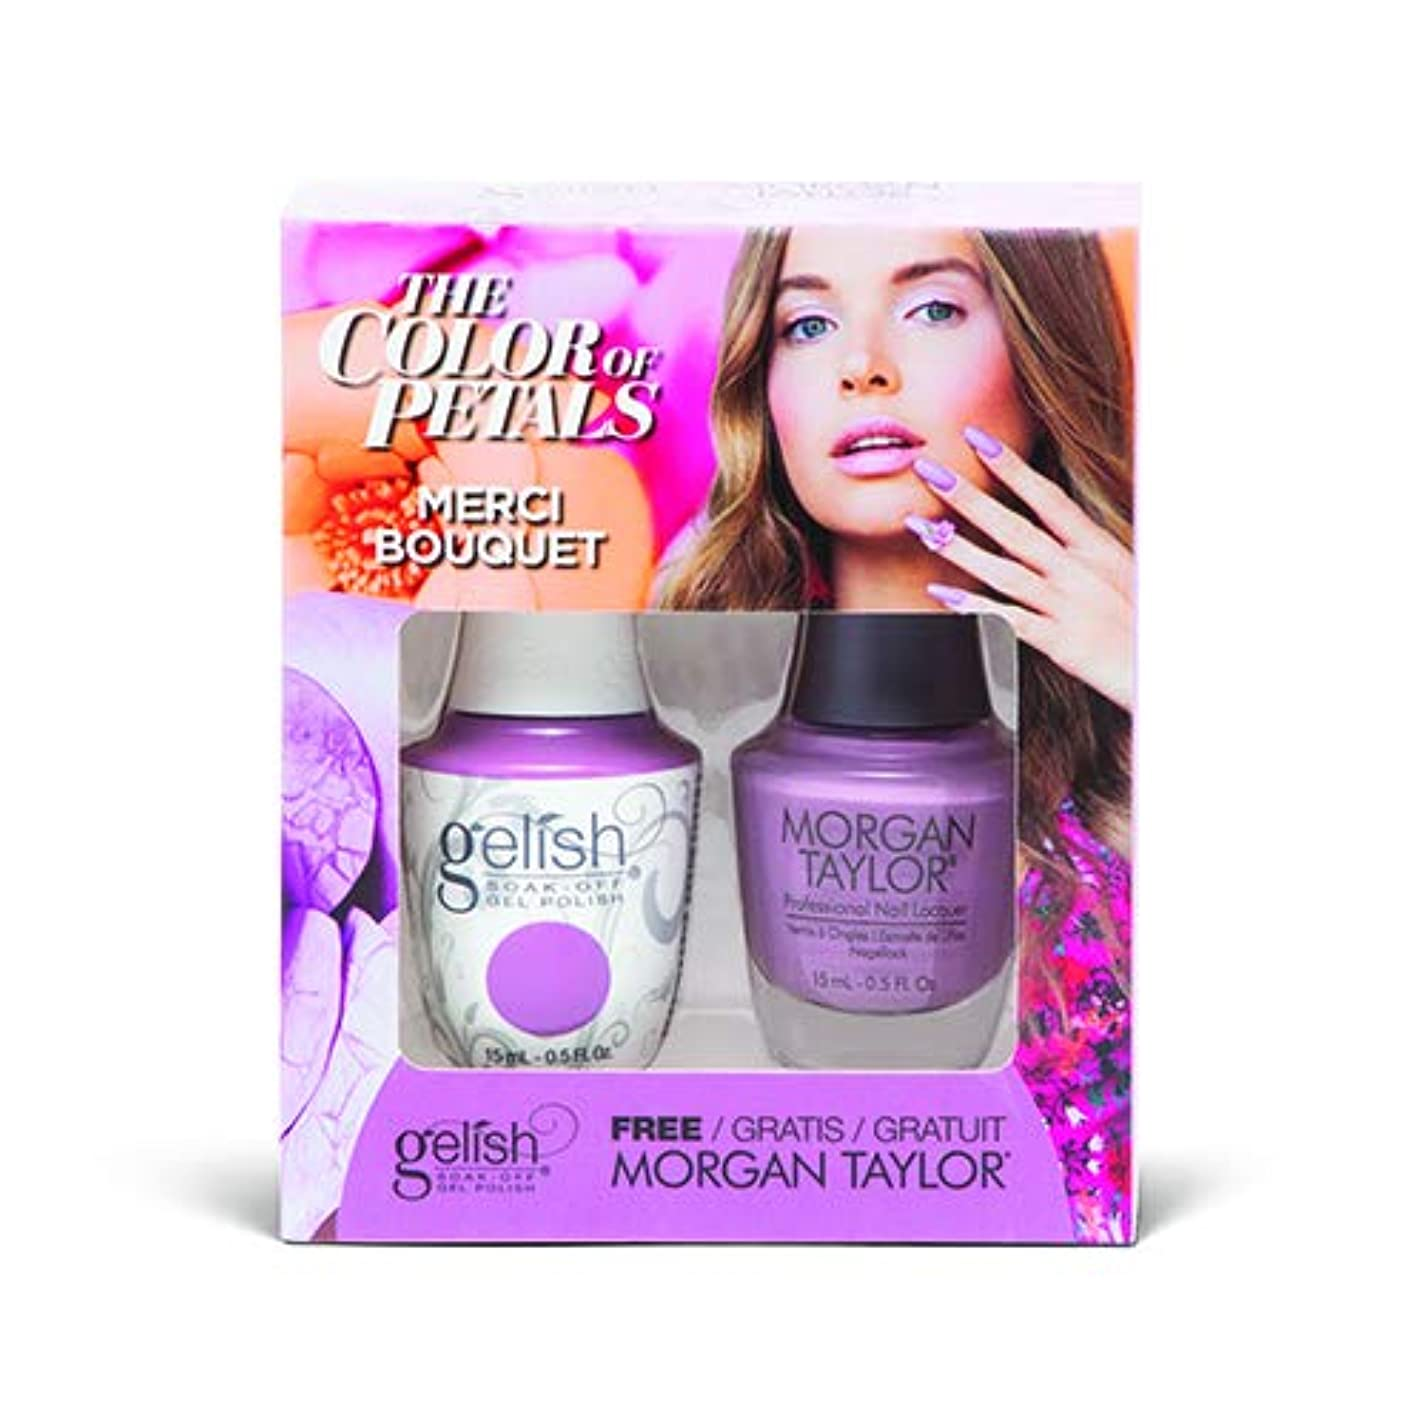 交換非難する代表してHarmony Gelish - Two Of A Kind - The Color Of Petals - Merci Bouquet - 15 mL / 0.5 Oz